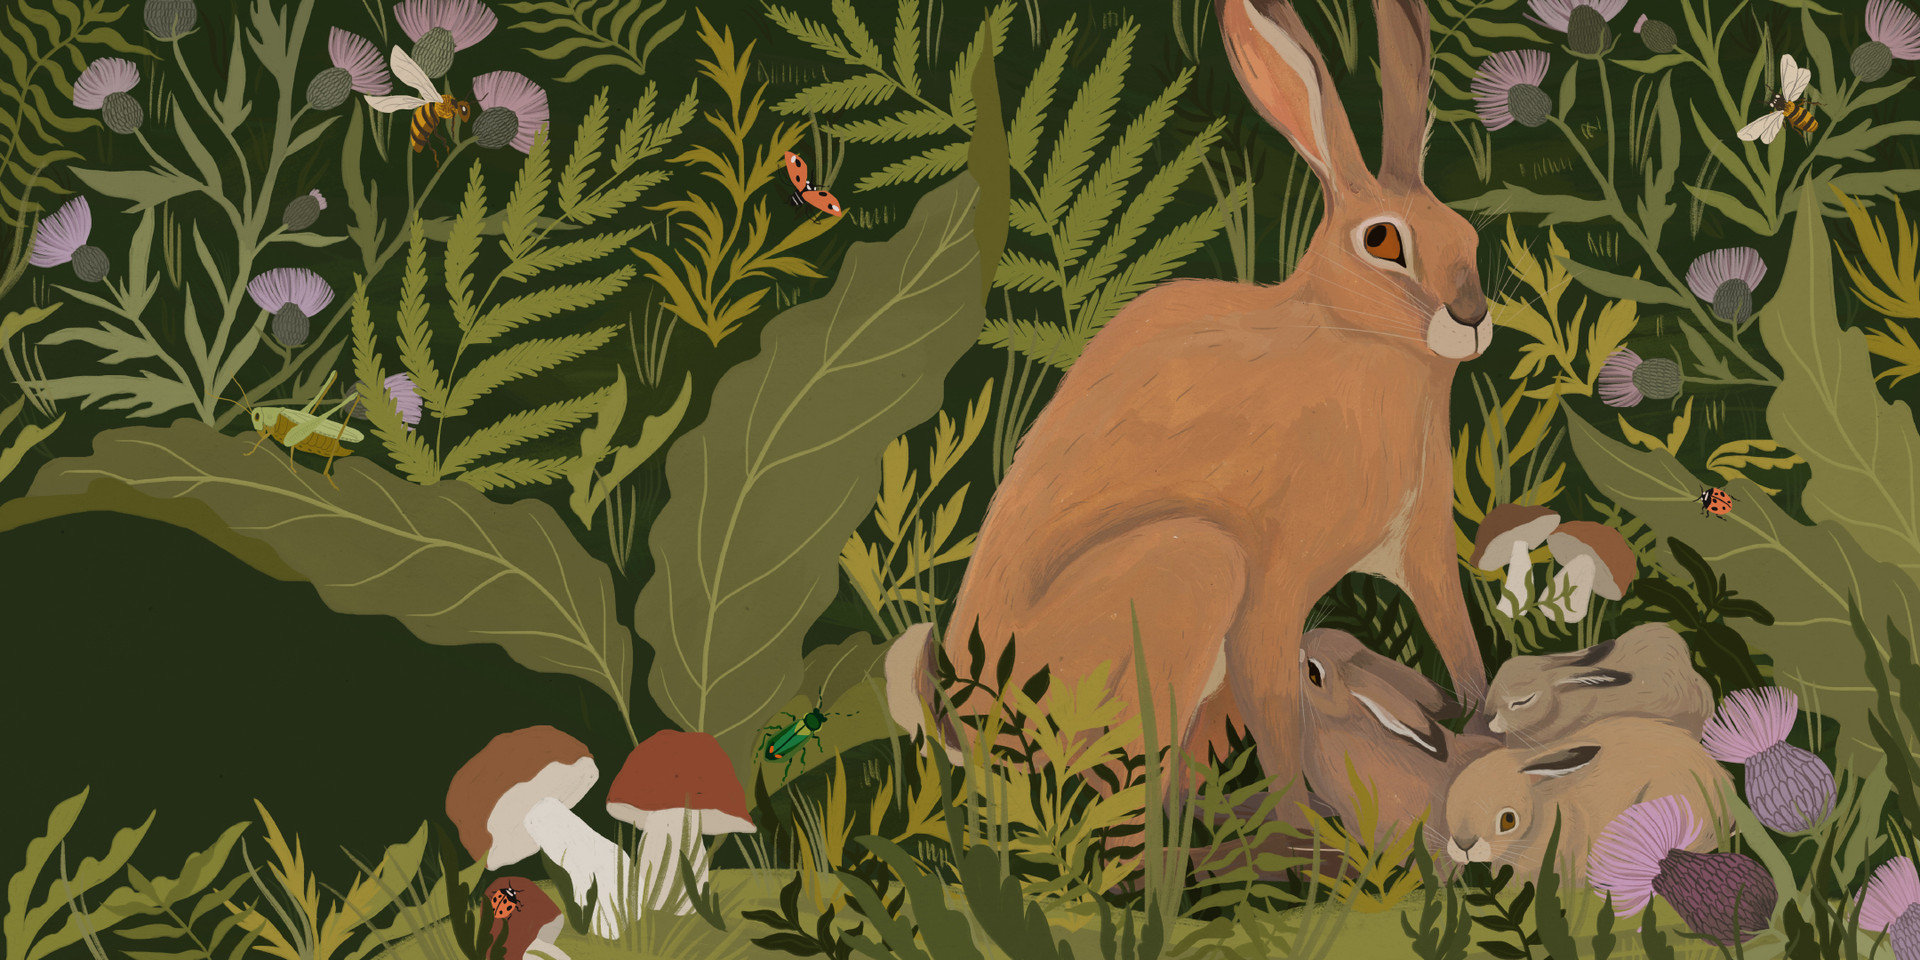 Leap, Hare, Leap - Brown Hare